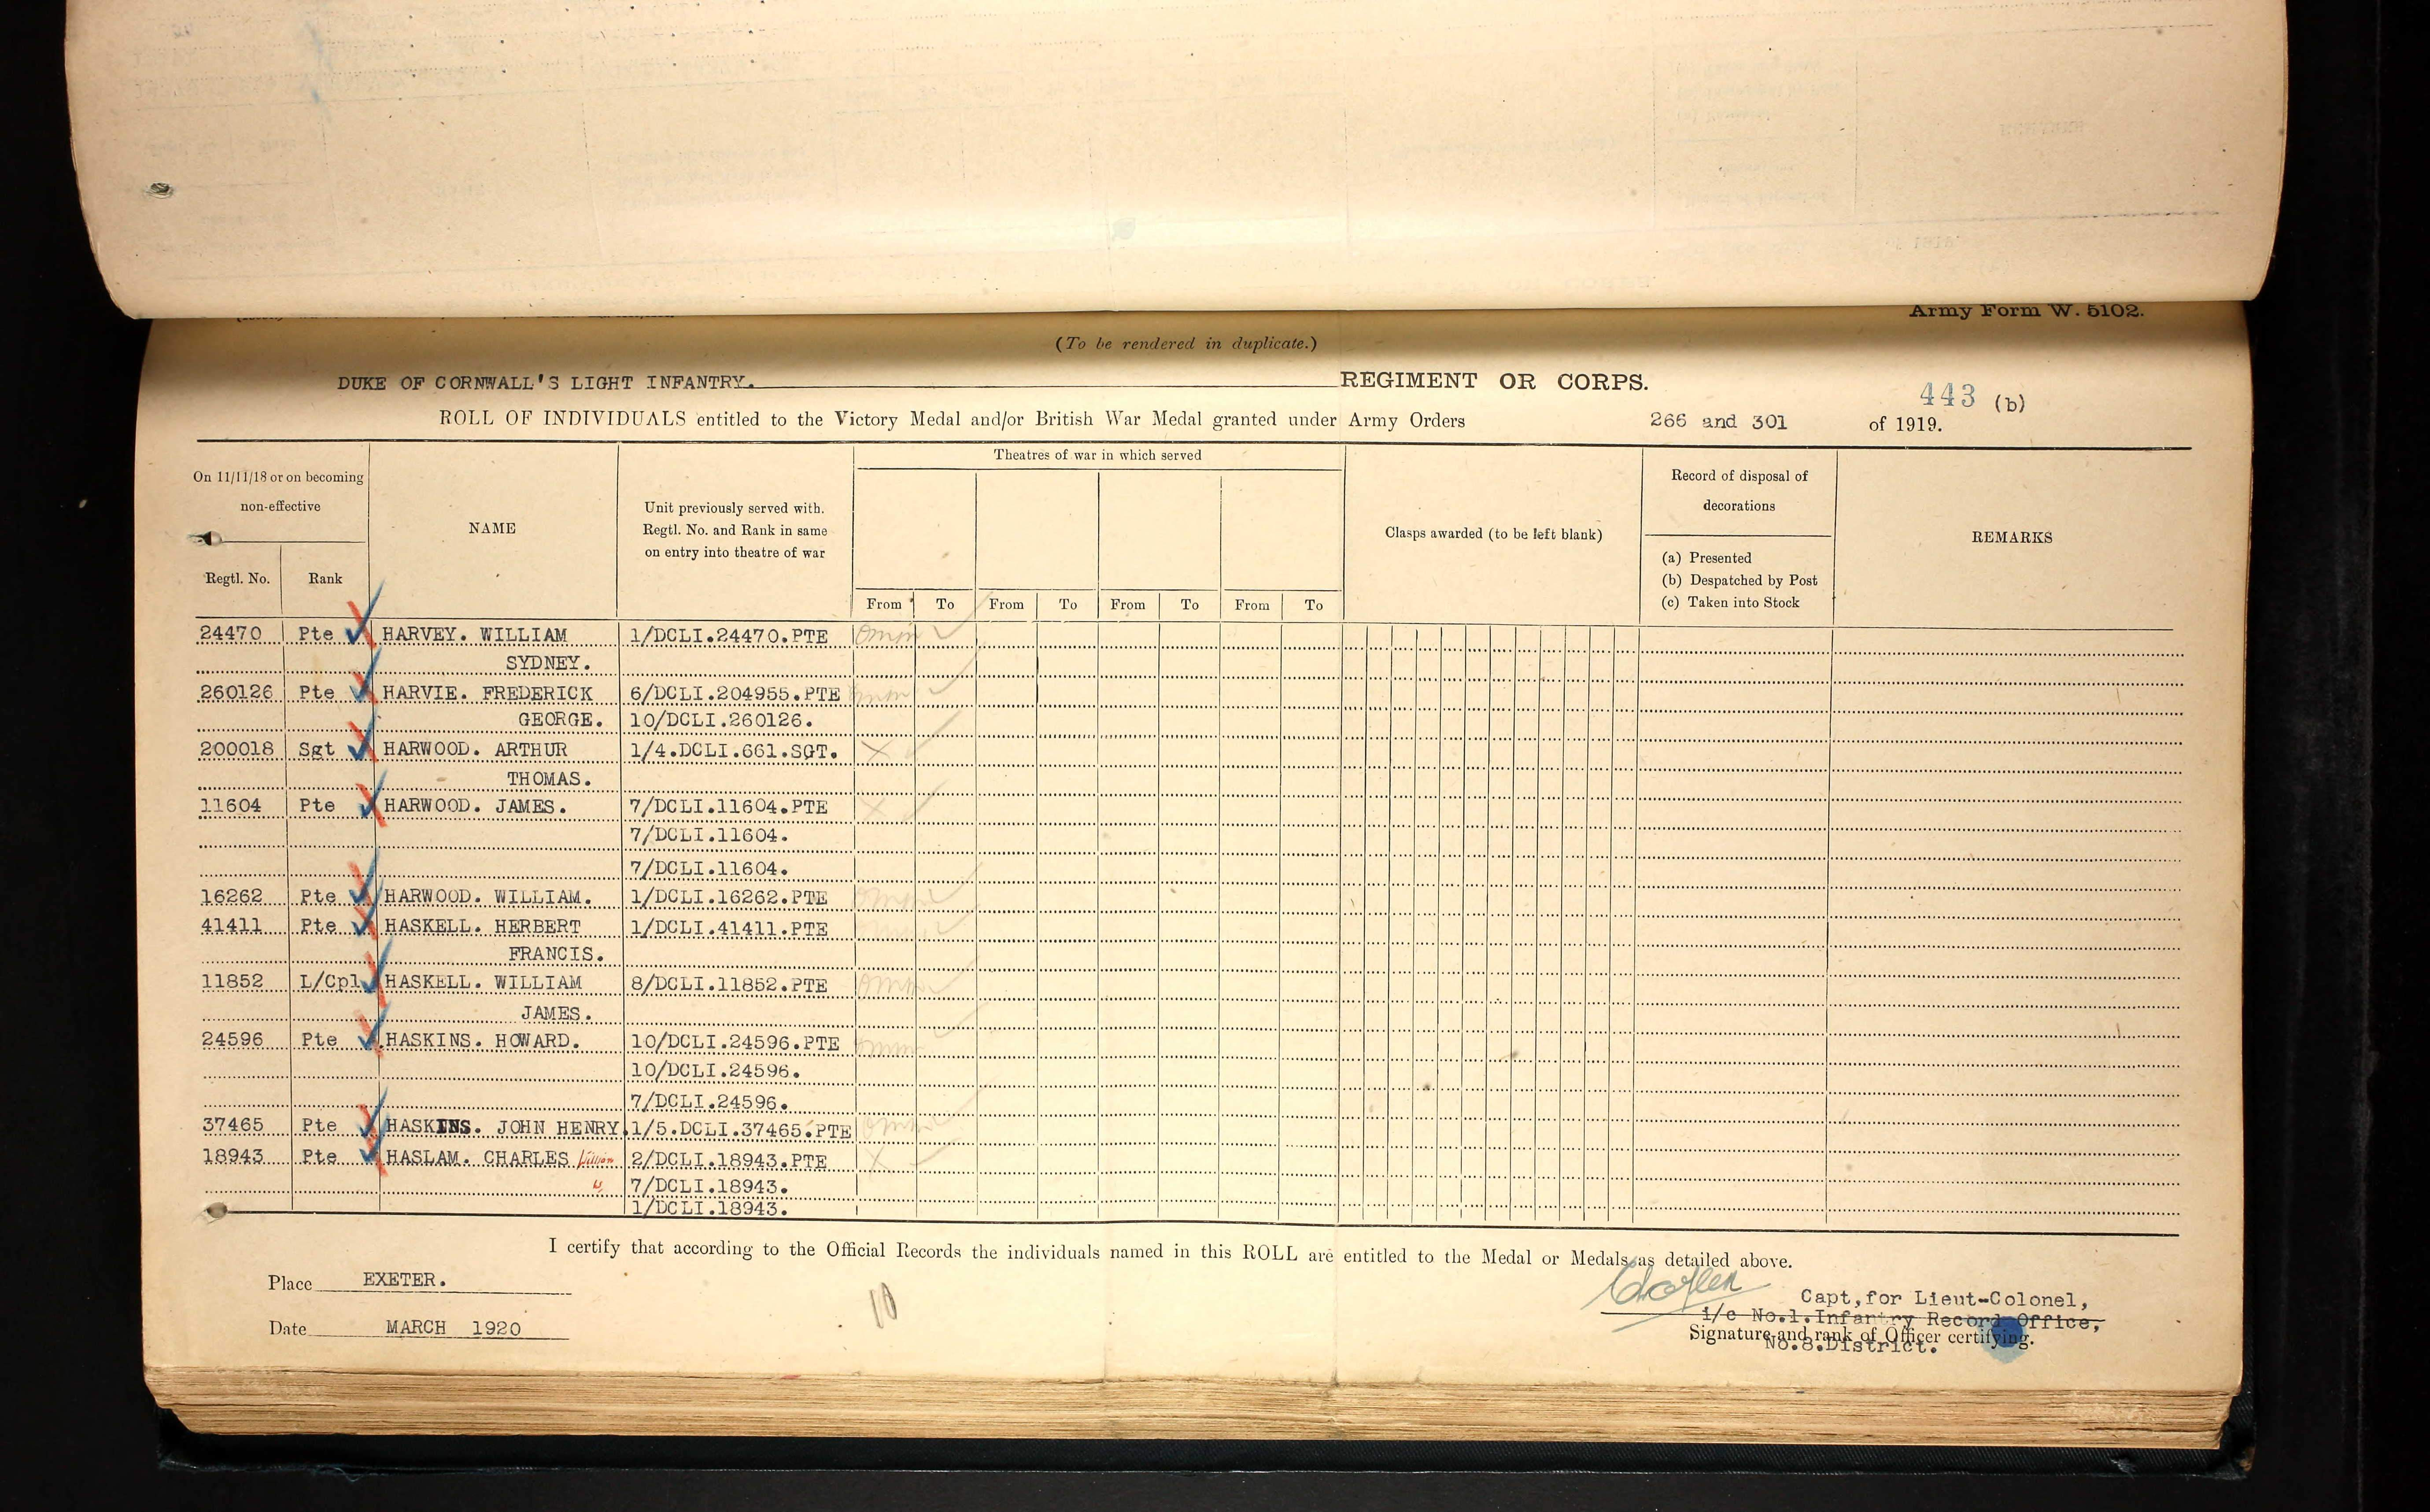 Charles W. Haslam, Medal Roll Records March 1920. Partial List of Individuals entitled to the Victory Medal and/or the British War Medal granted under Army Orders. This document lists the battalions that Charlie served with.